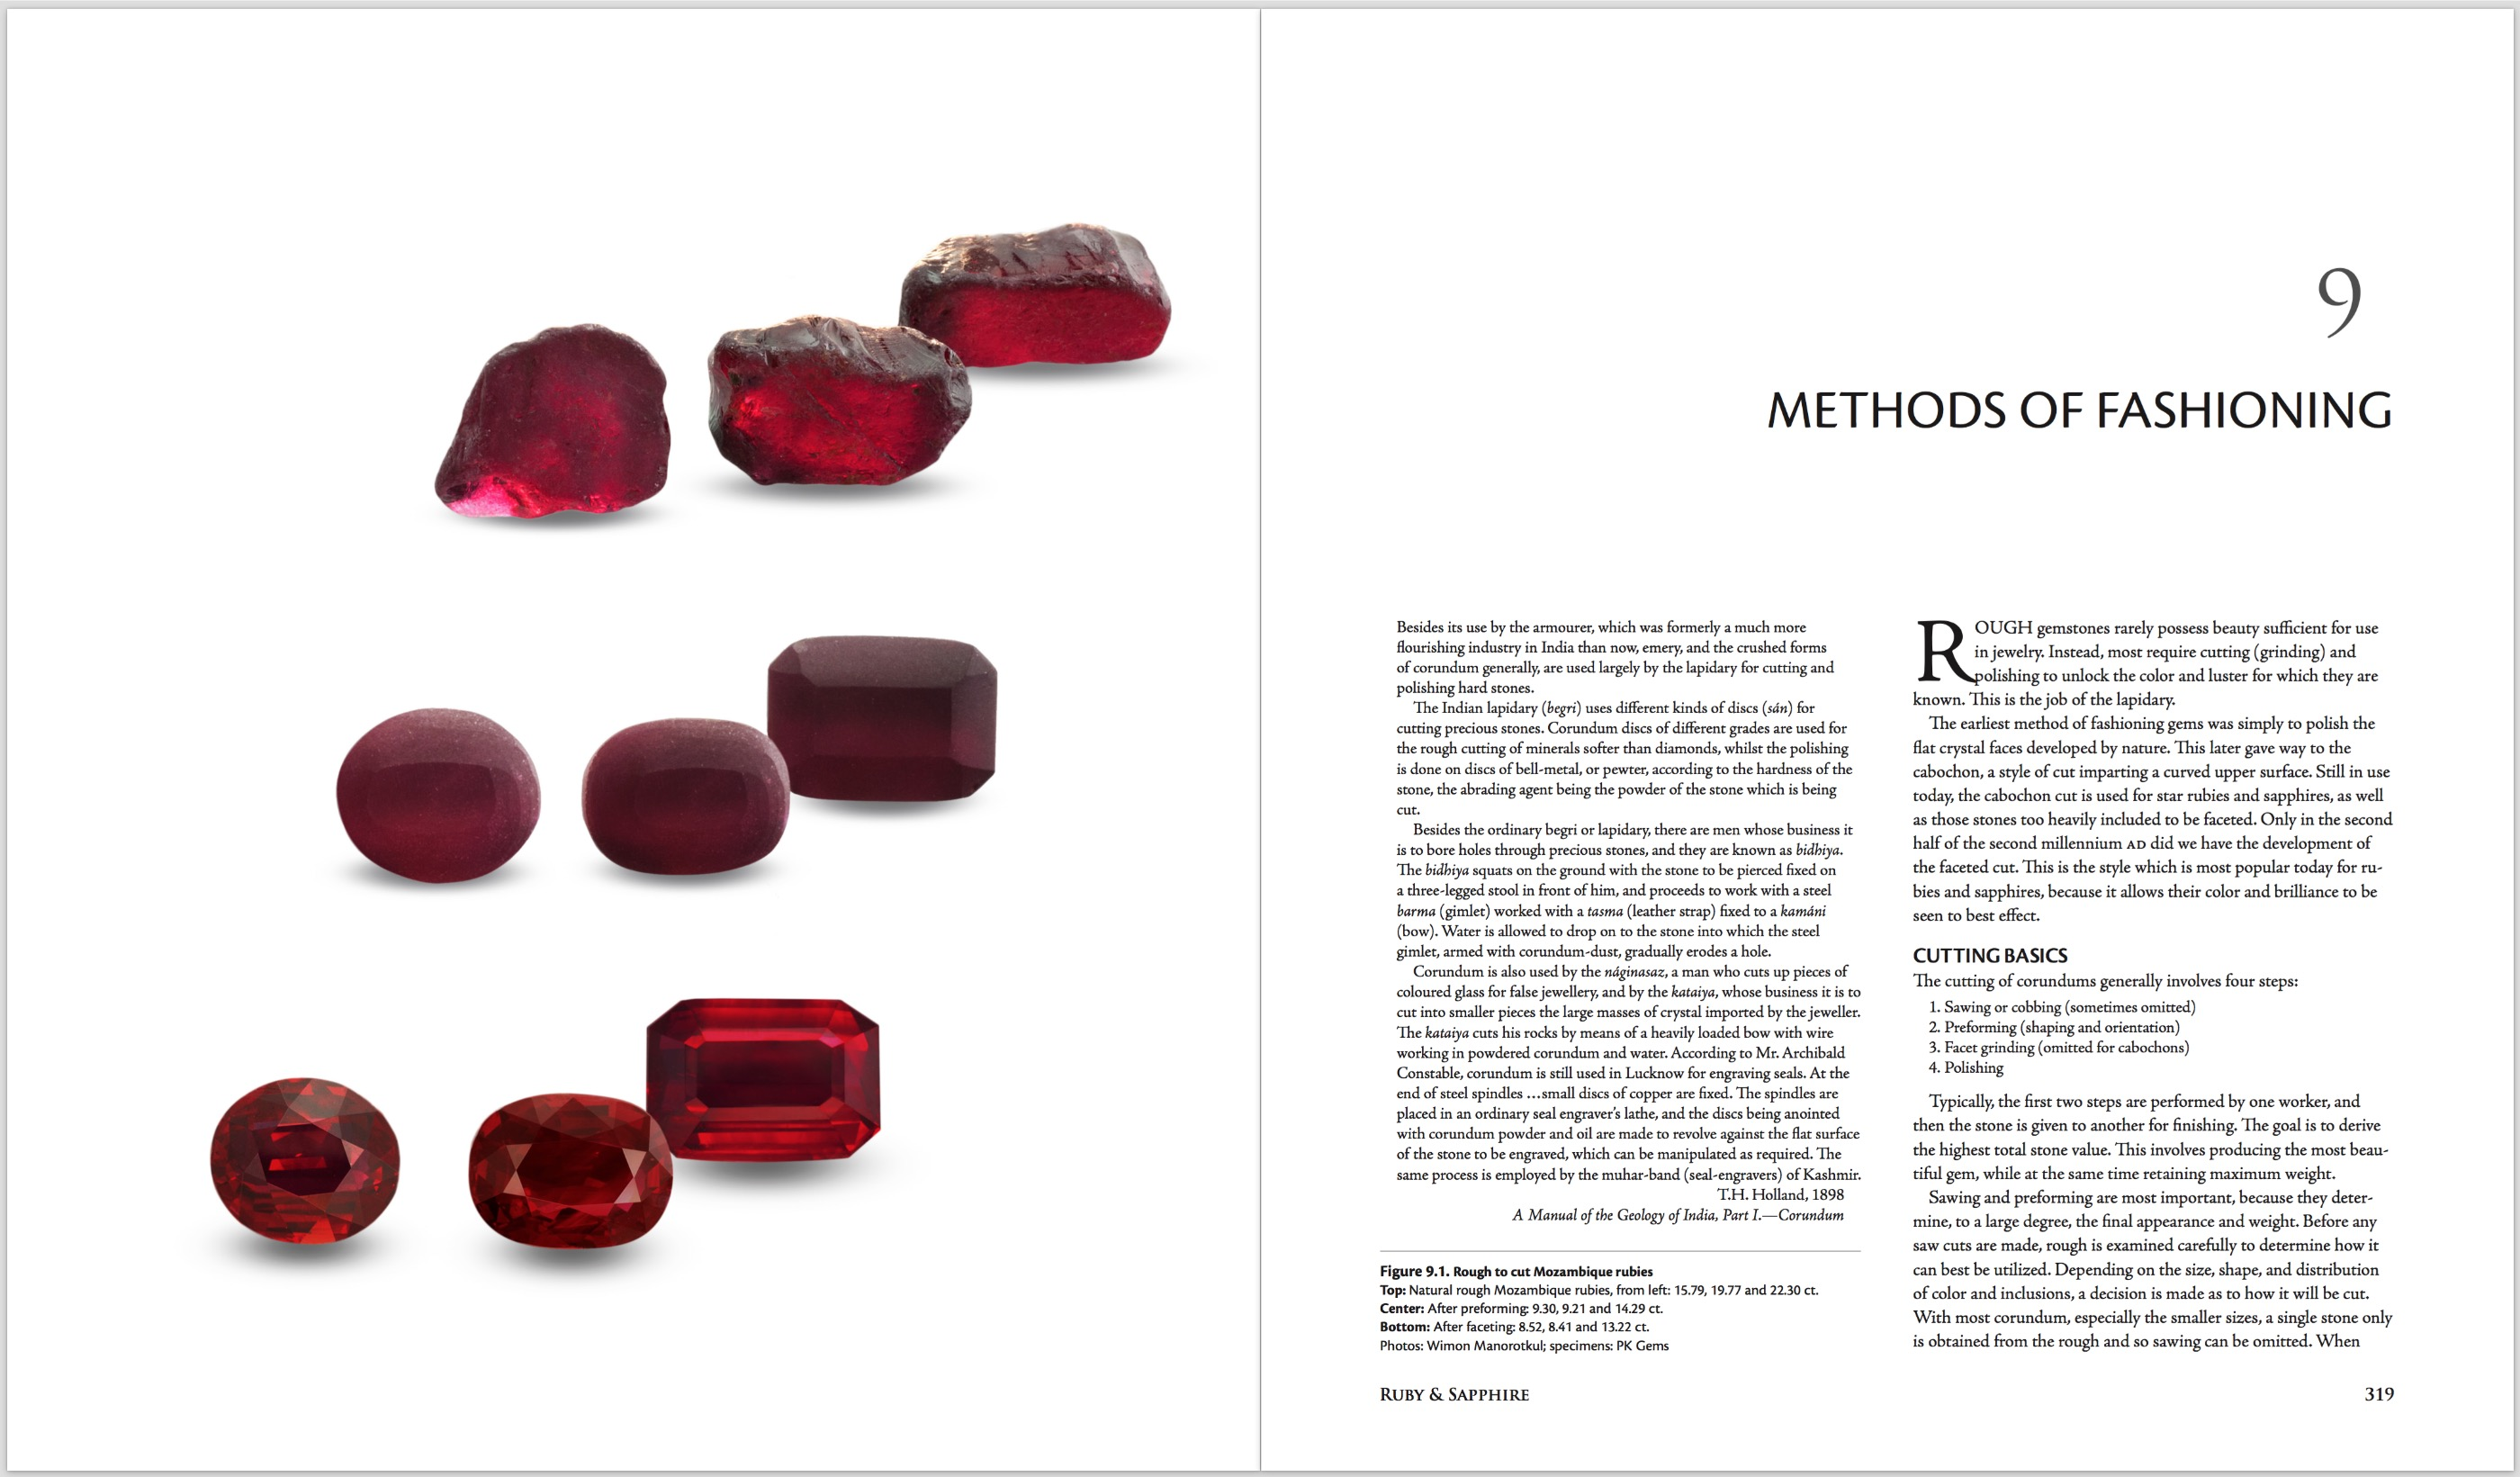 Ruby & Sapphire: A Gemologist's Guide – Methods of Fashioning